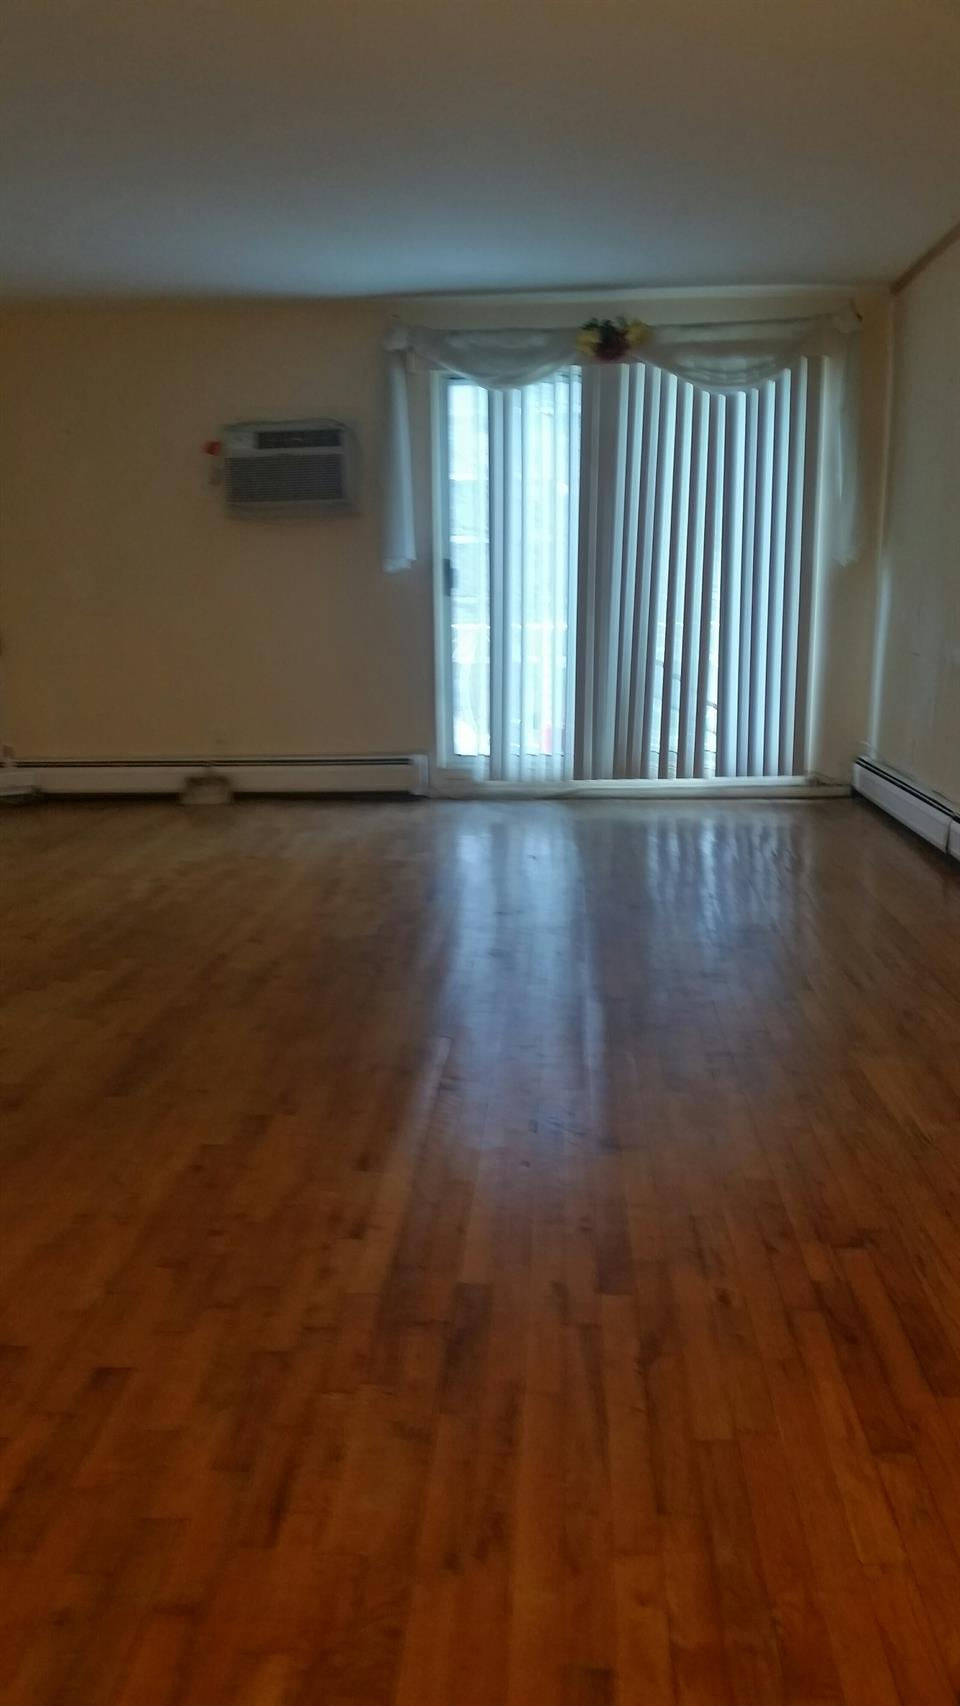 Residential for Rent at 2745 Cropsey Ave Brooklyn, New York 11214 United States